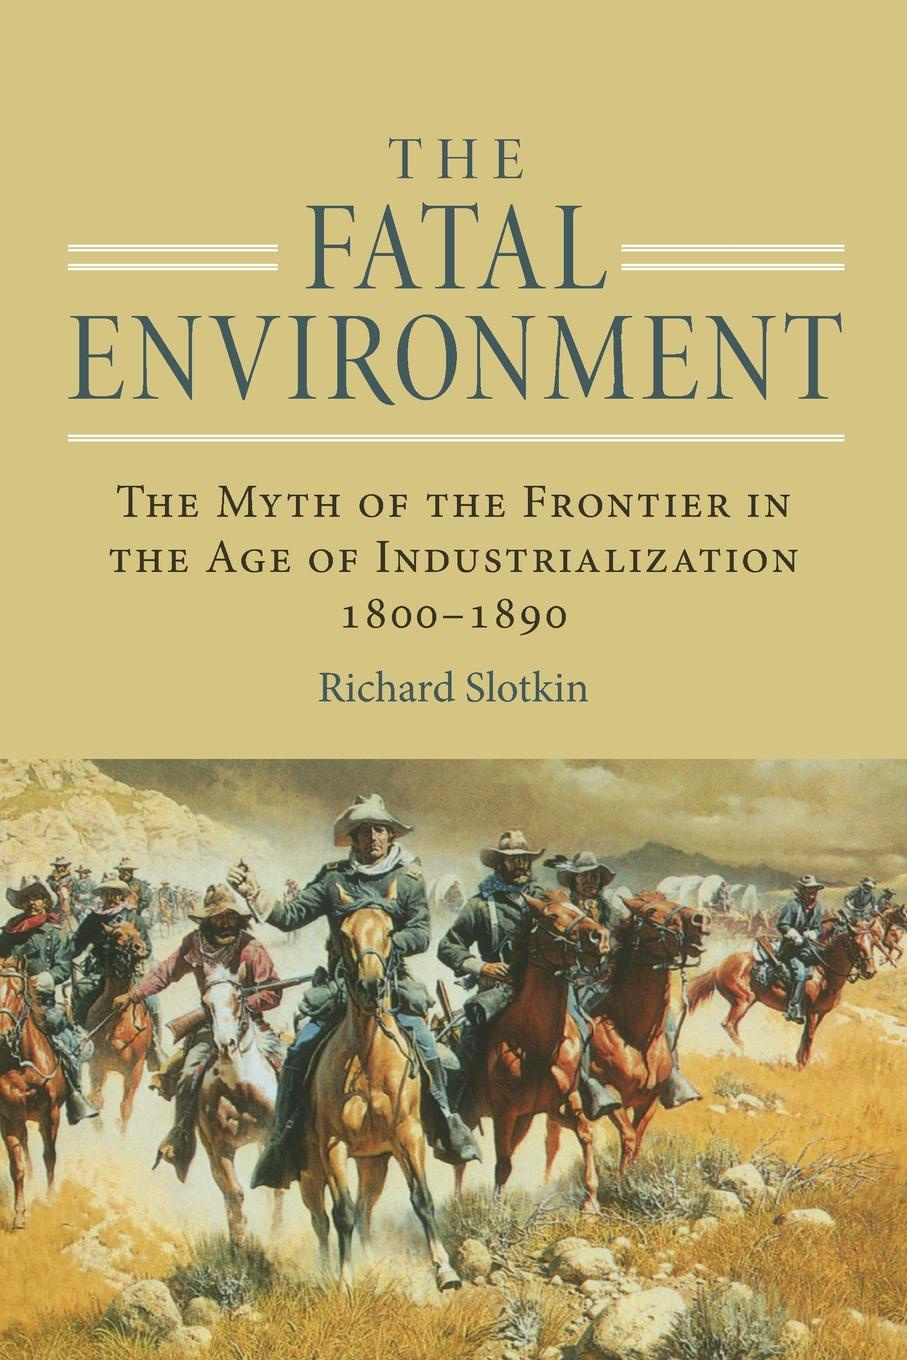 Richard Slotkin Fatal Environment. The Myth of the Frontier in the Age of Industrialization, 1800-1890 howard fast the last frontier